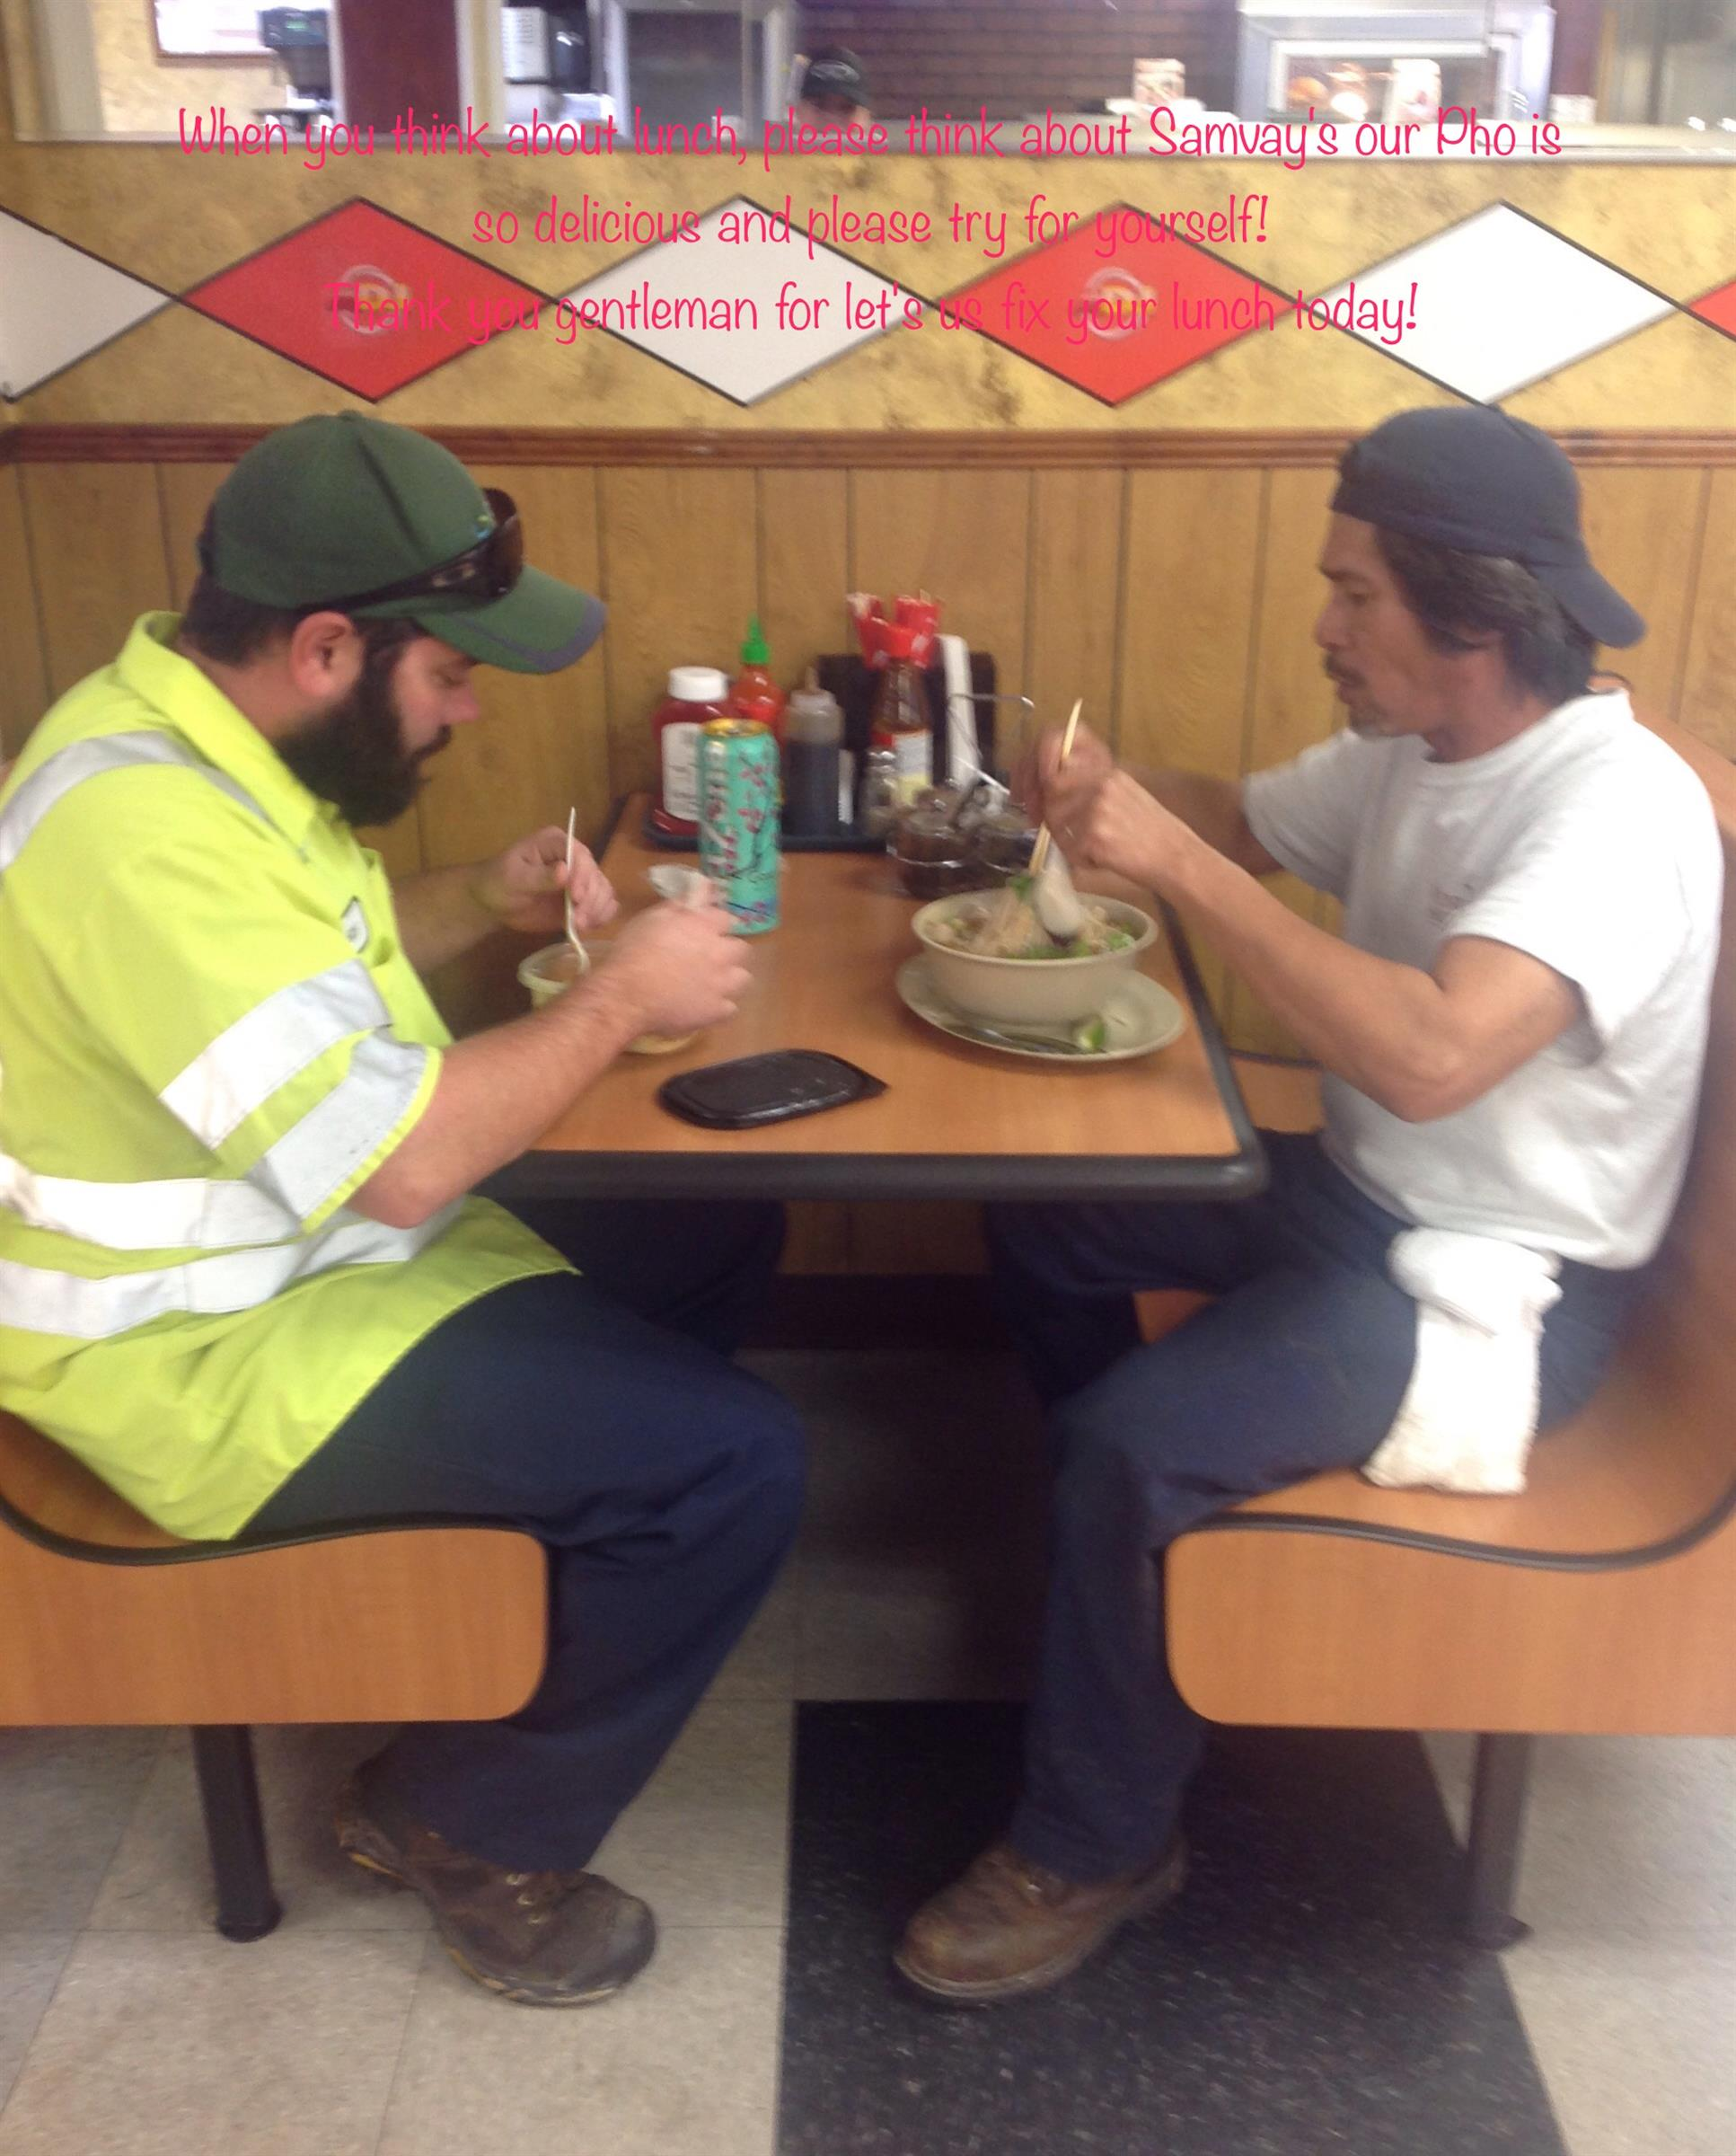 Two customers eating